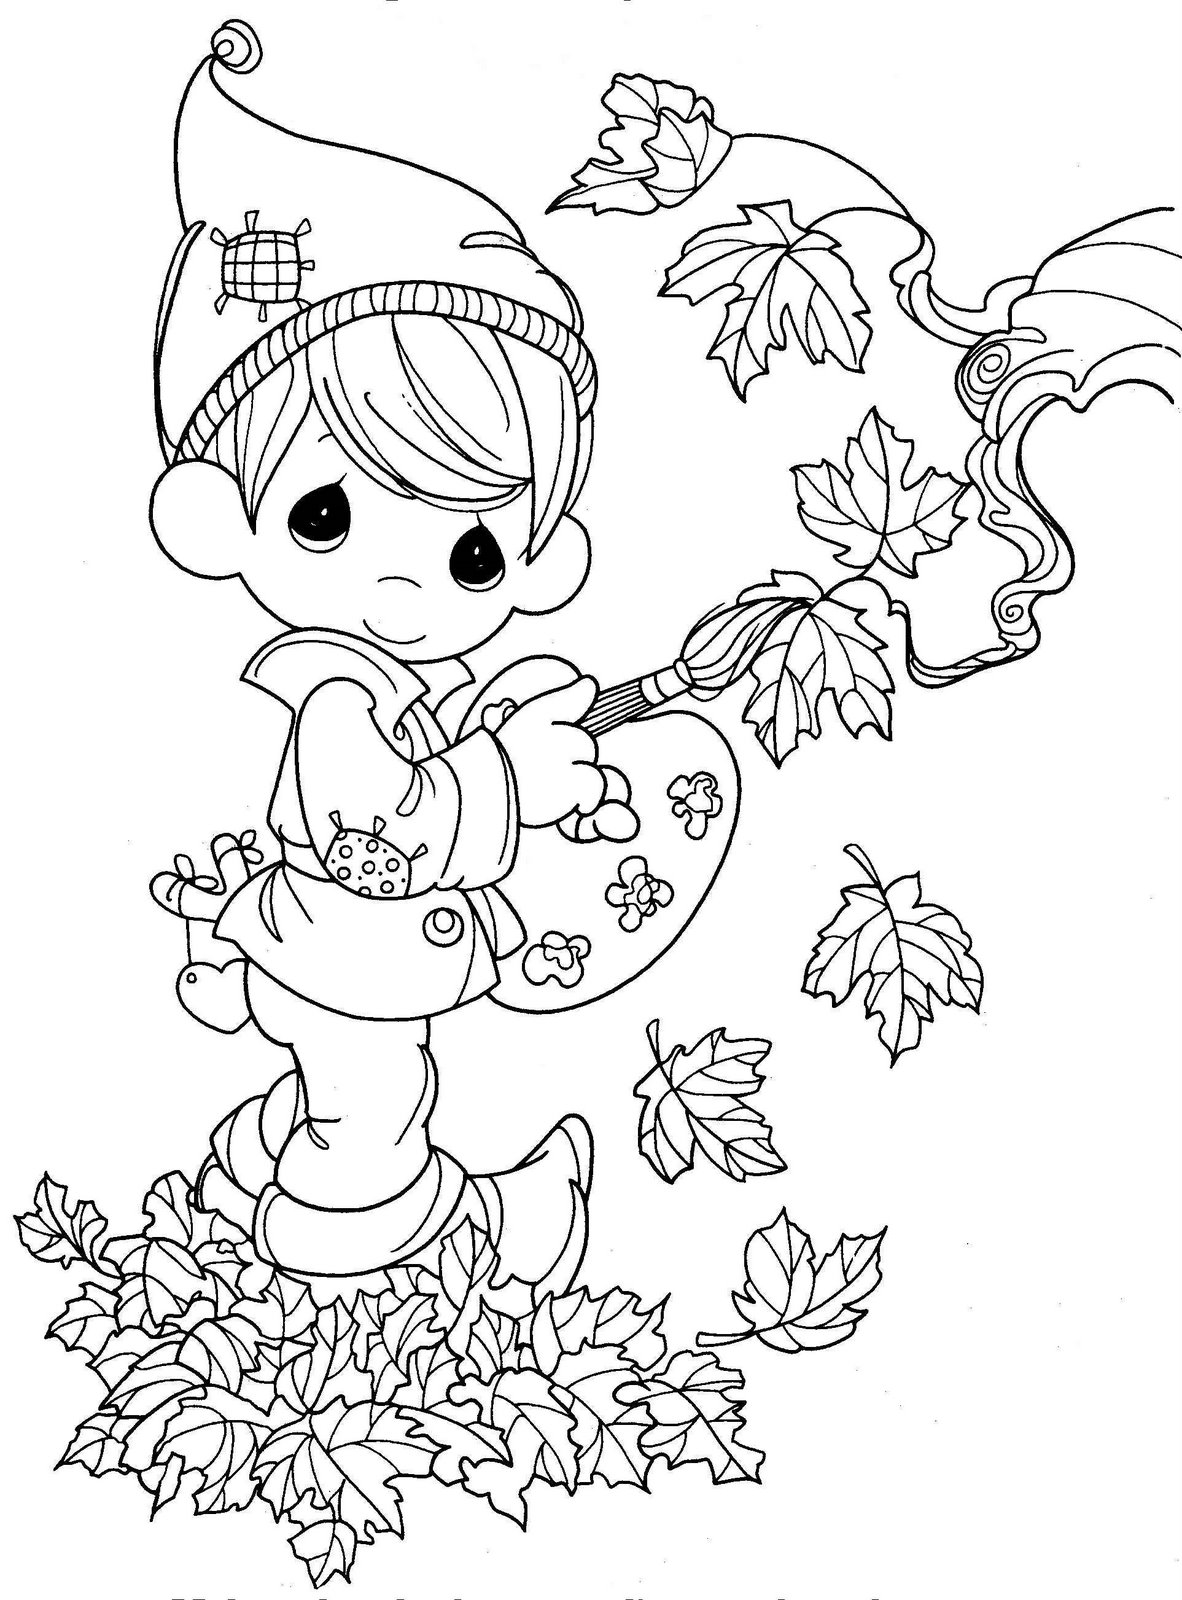 kids coloring pages that - photo#10